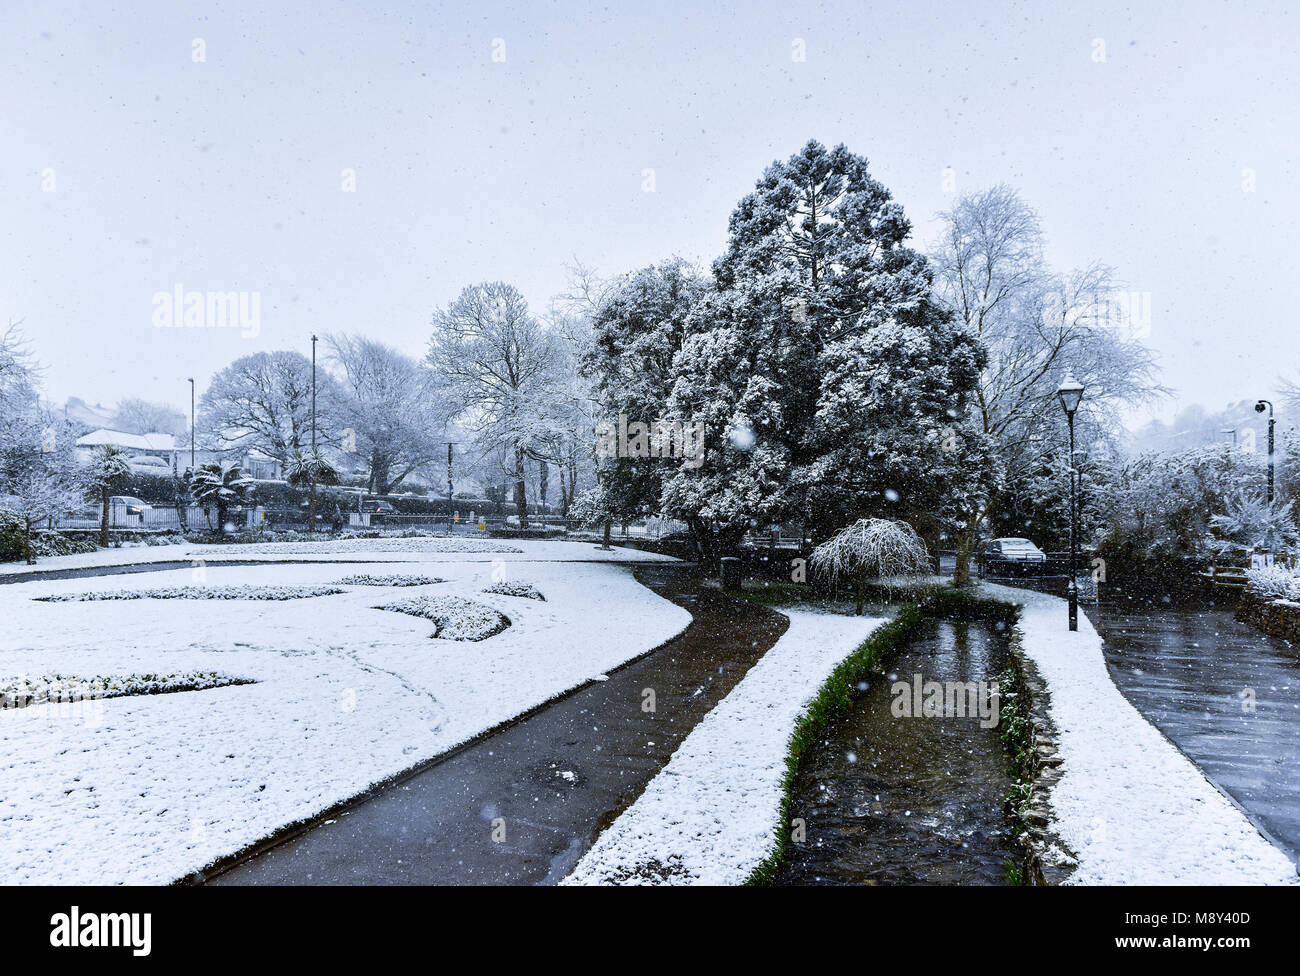 Heavy snow fall on Trenance Gardens in Newquay Cornwall. - Stock Image